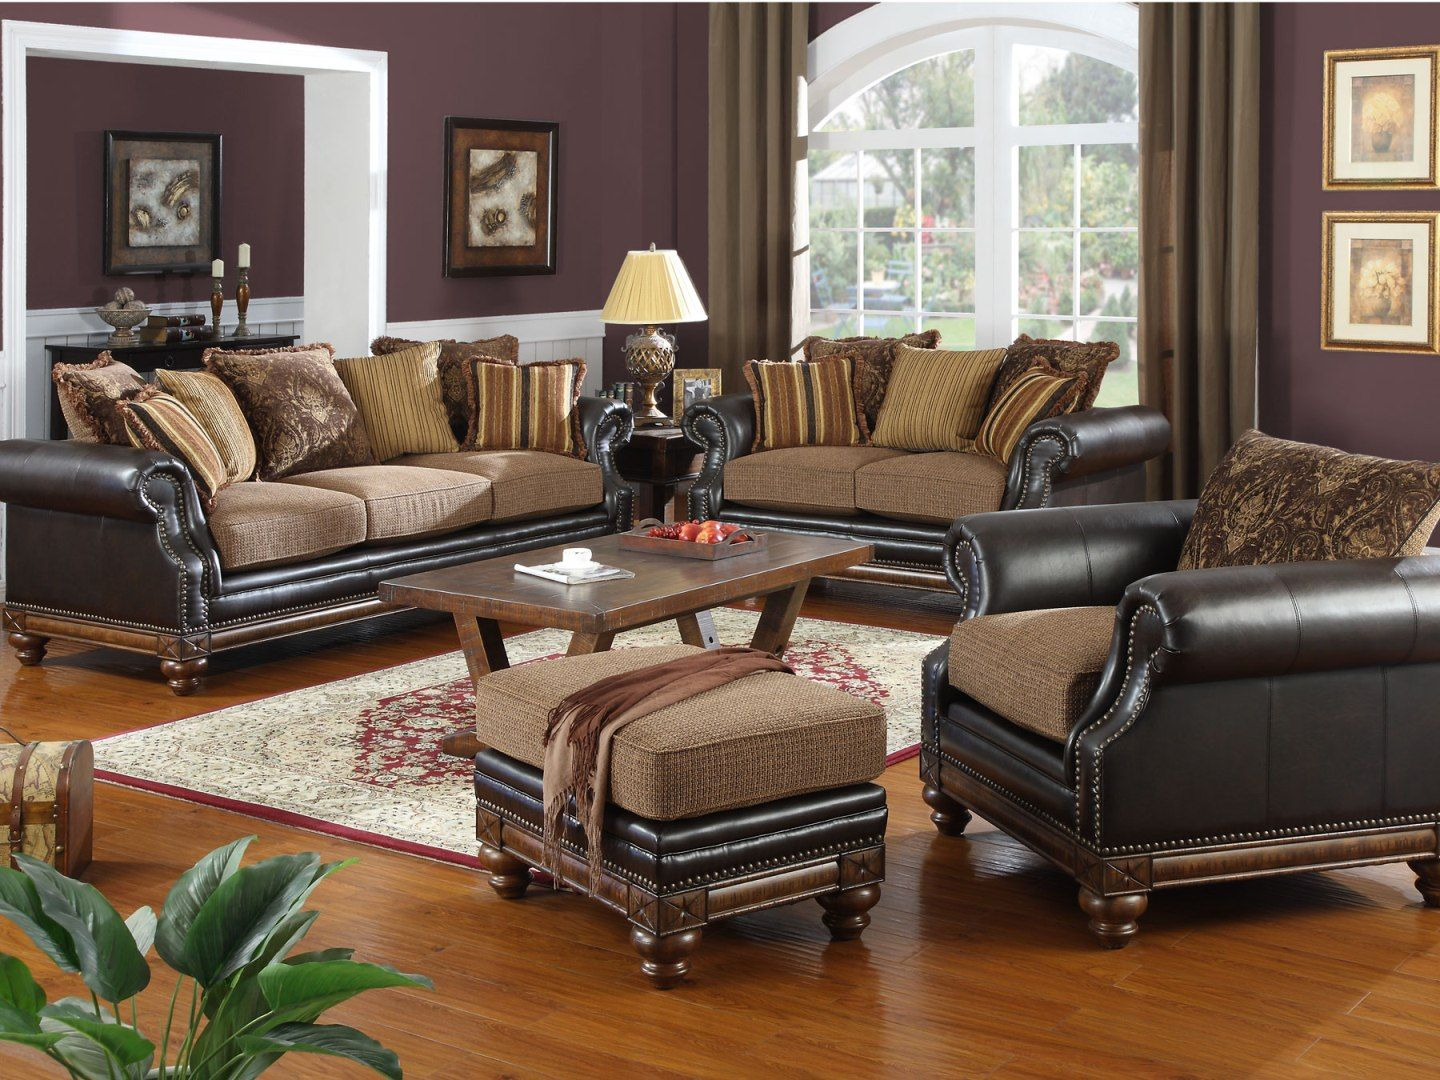 Prime 2017 Complete Leather Sofa Sets How To Get Your Dream Set Caraccident5 Cool Chair Designs And Ideas Caraccident5Info